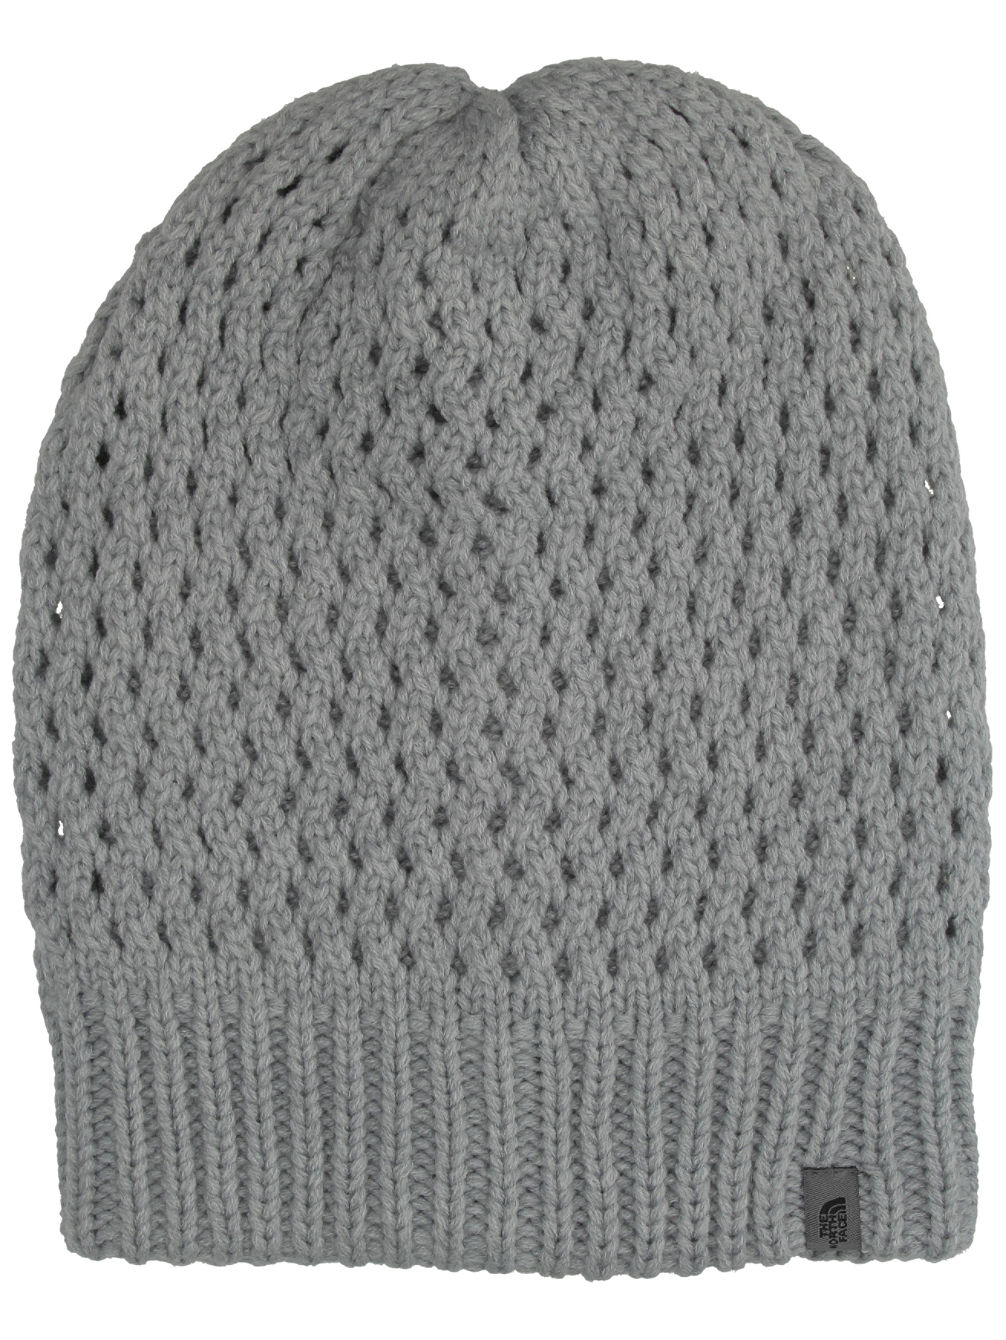 Buy THE NORTH FACE Shinsky Beanie online at blue-tomato.com 1656813c25b1